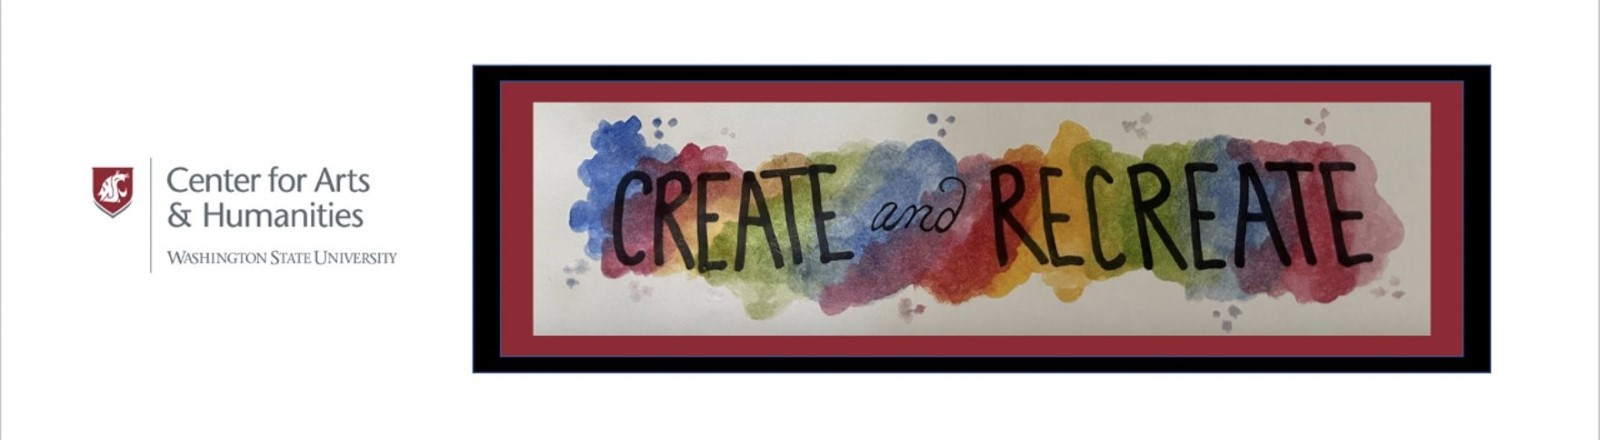 Create and Recreate and CAH Logo